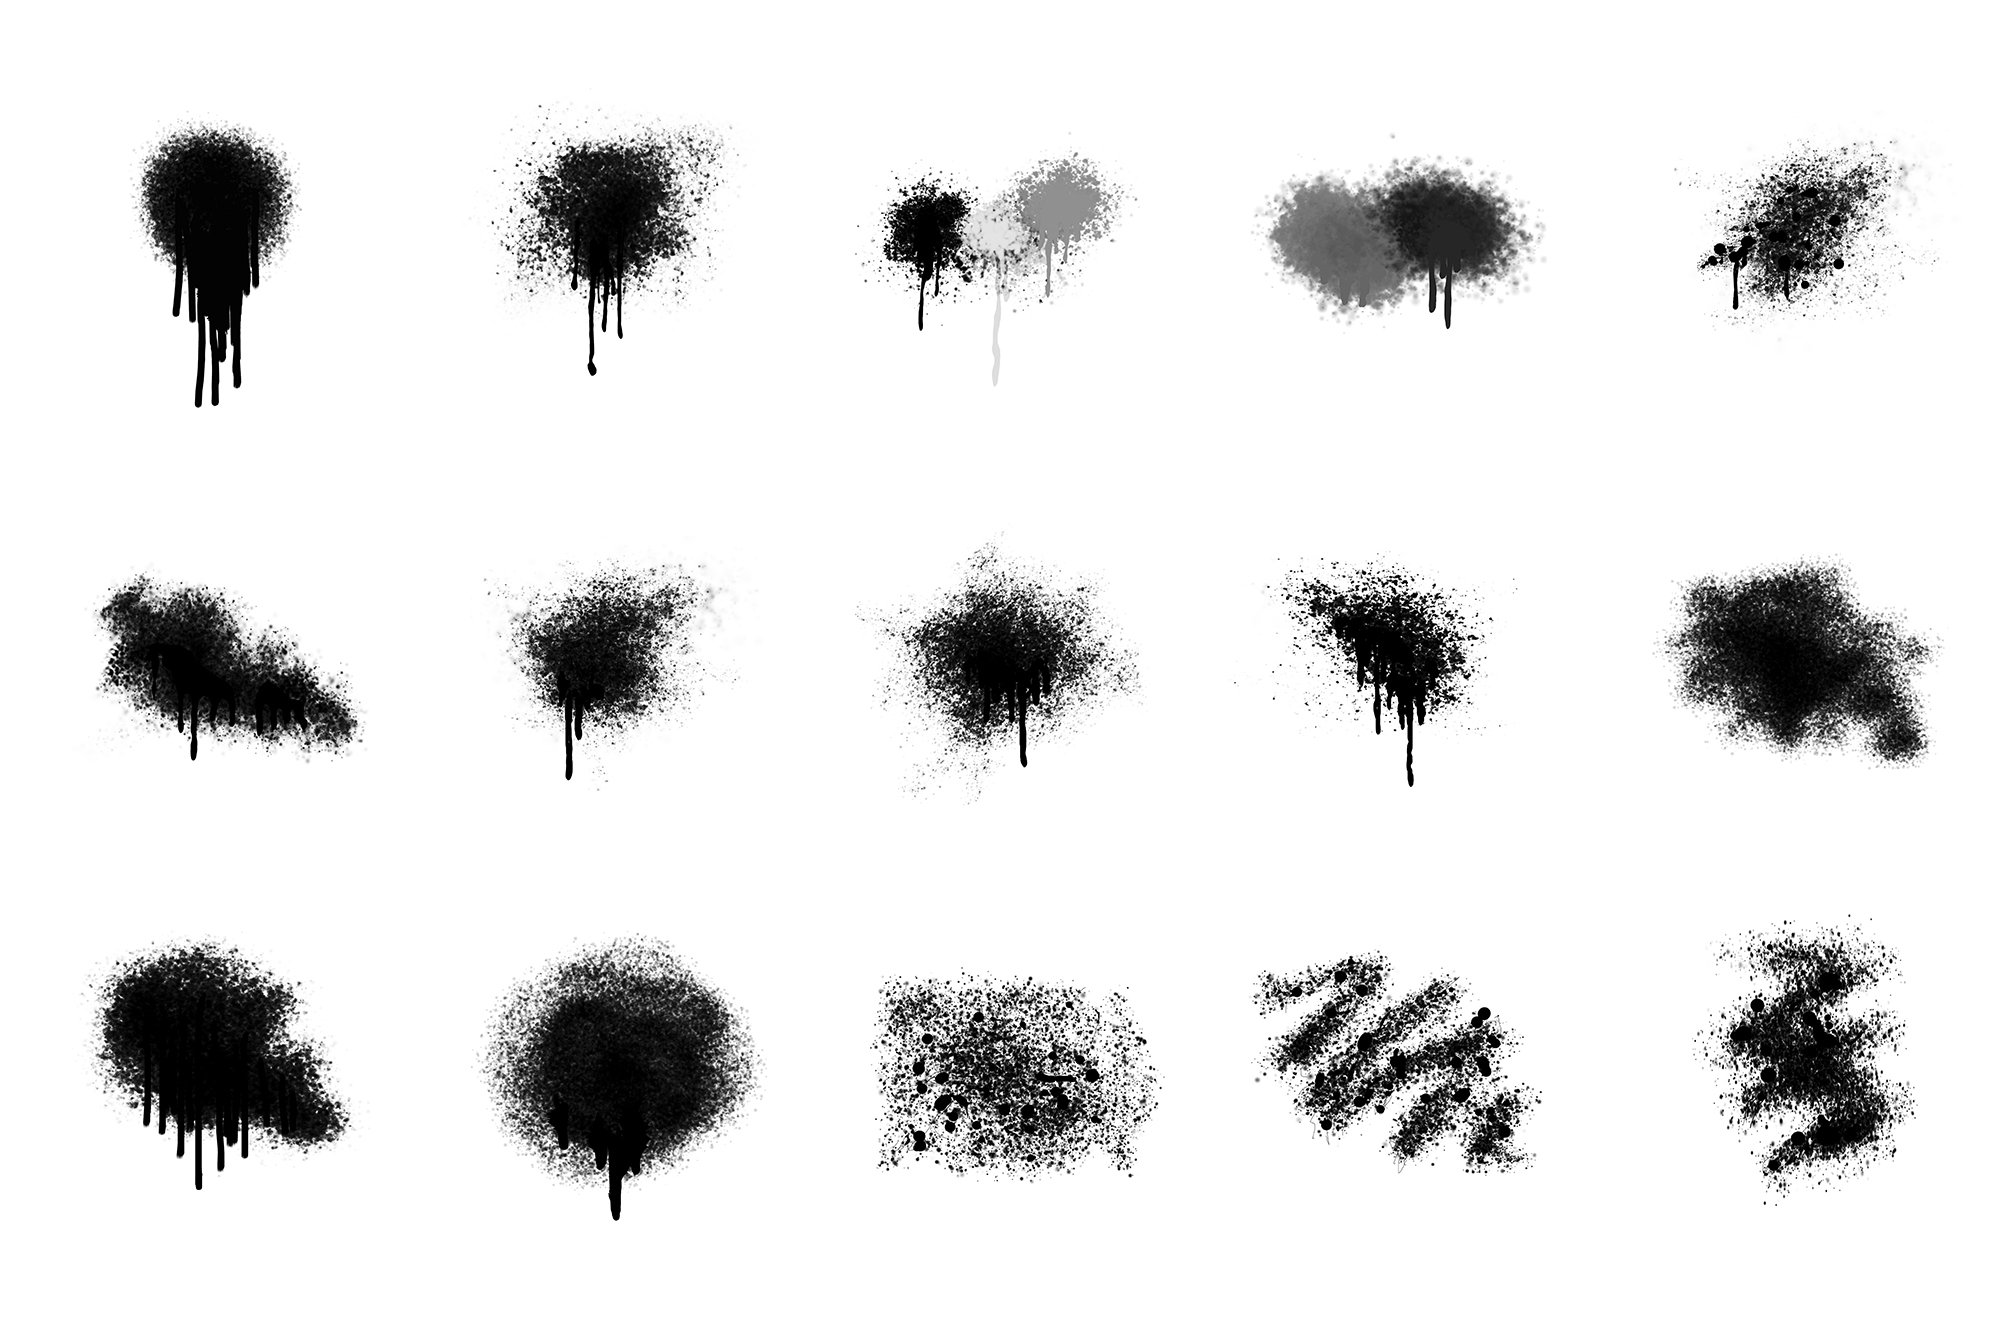 Spray Paint Textures PNG 15 Elements example image 1